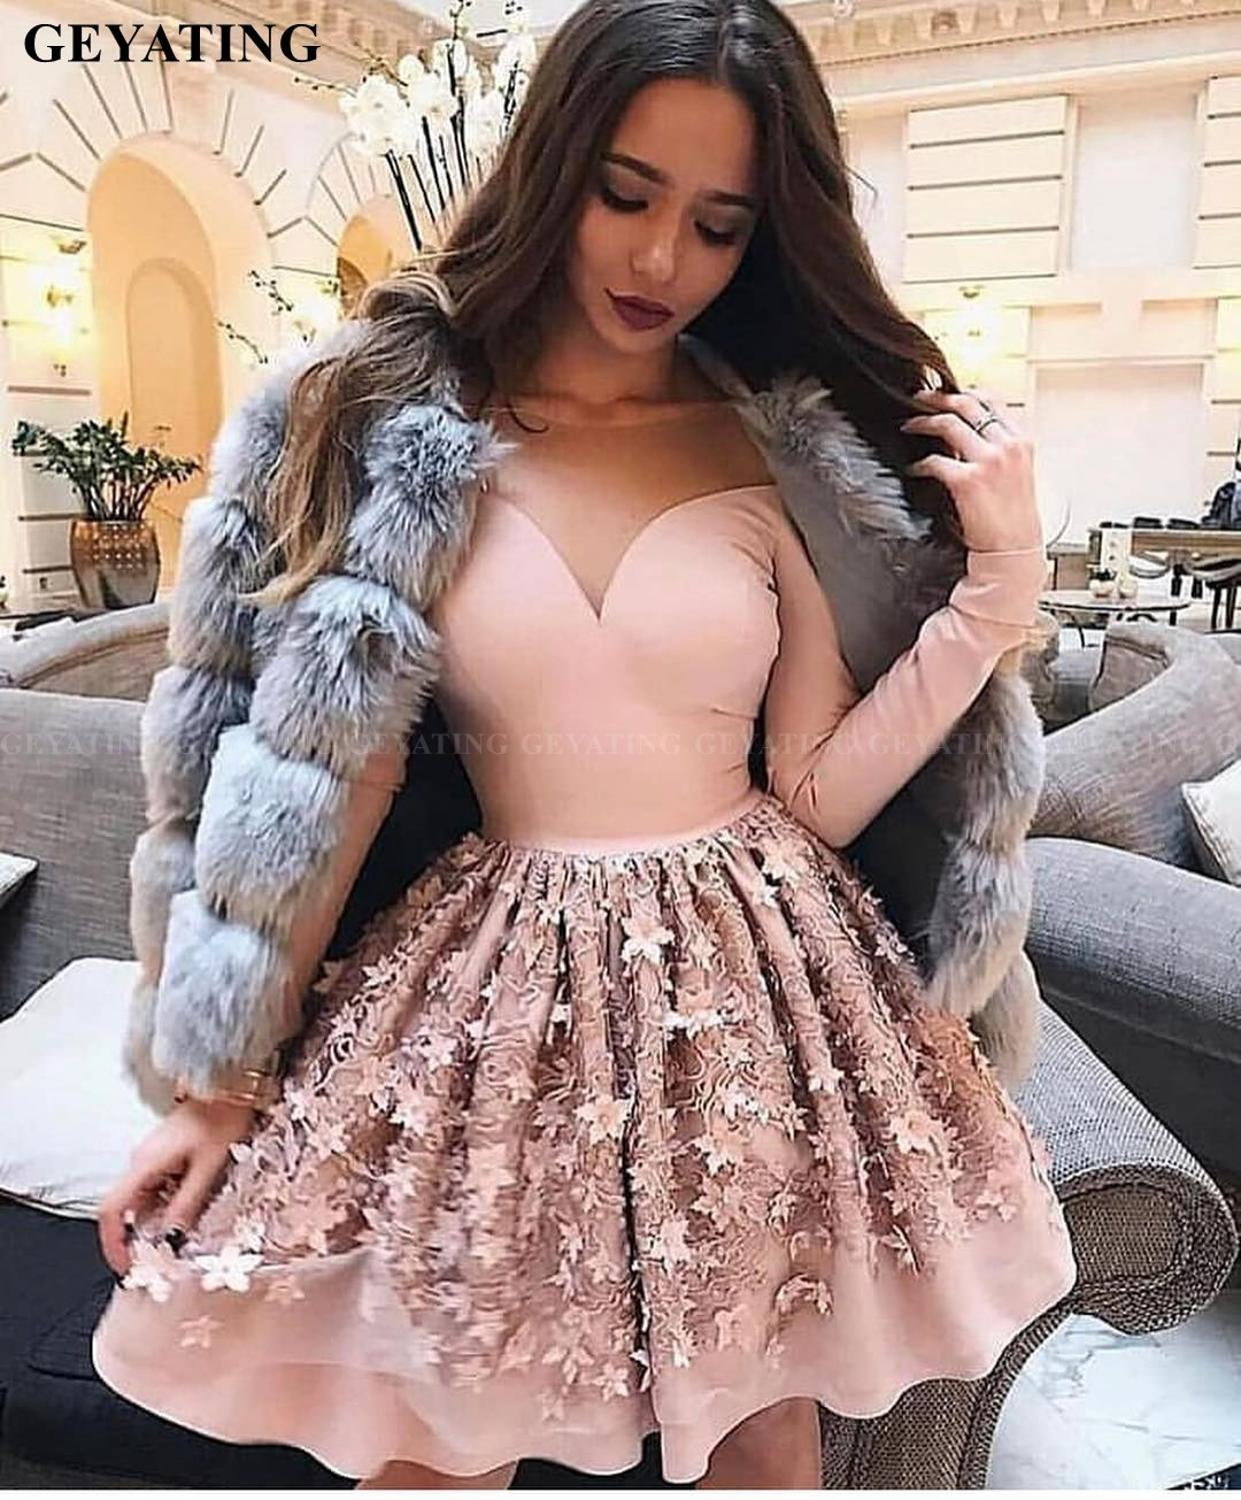 Elegant Long Sleeves Blush Pink 3D Floral Homecoming Dresses 2020 A line Knee Length Short Cocktail Dress Graduation Party Gowns-in Homecoming Dresses from Weddings & Events